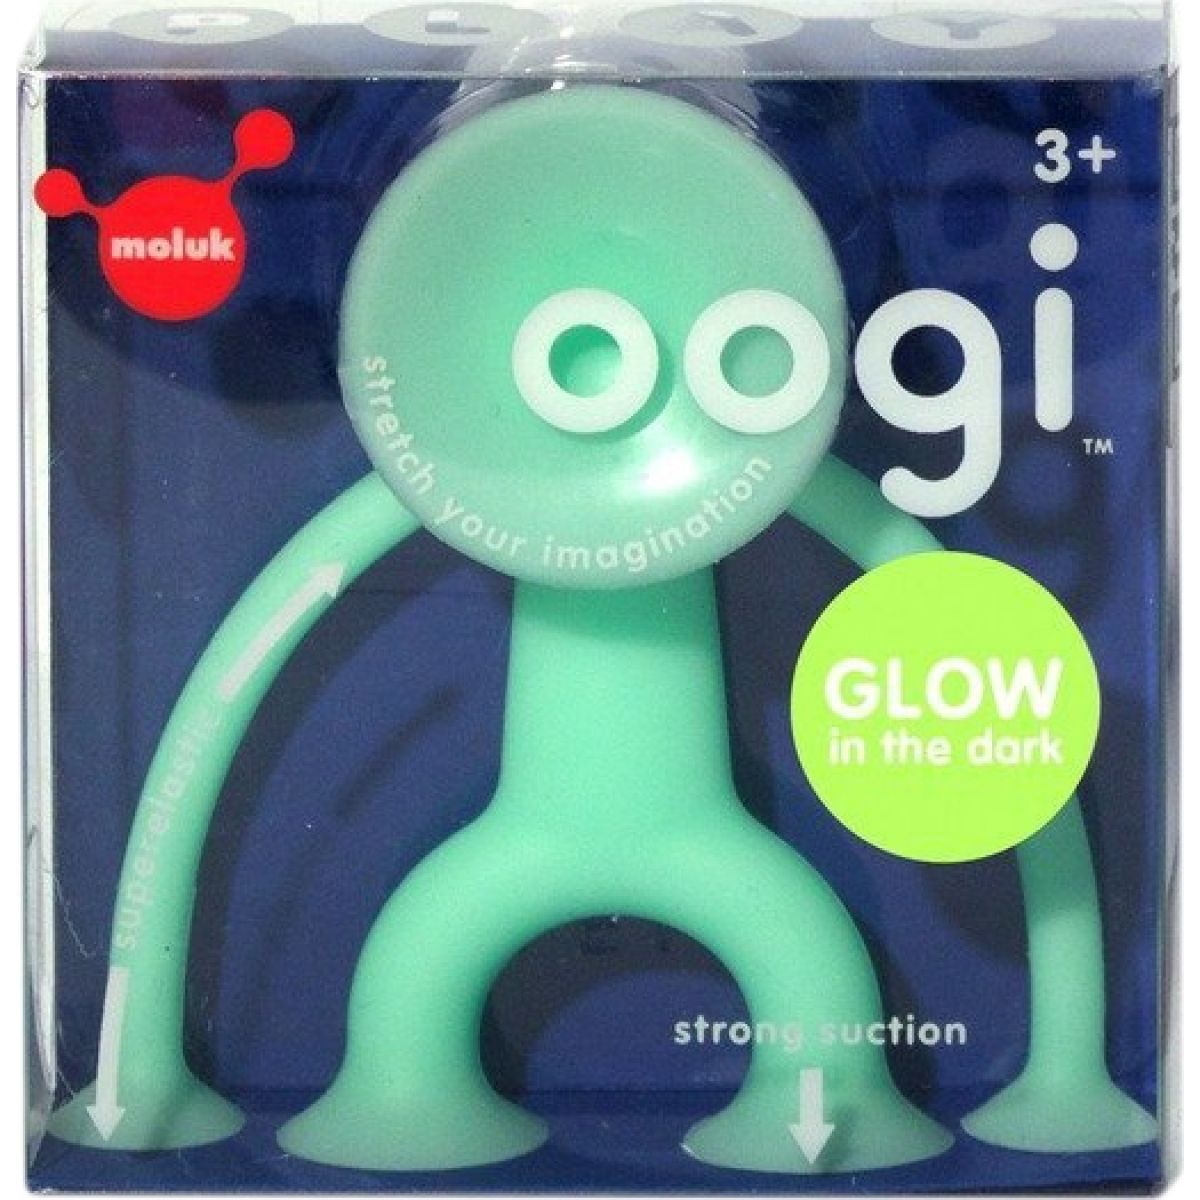 Moluk Oogi Glow Junior